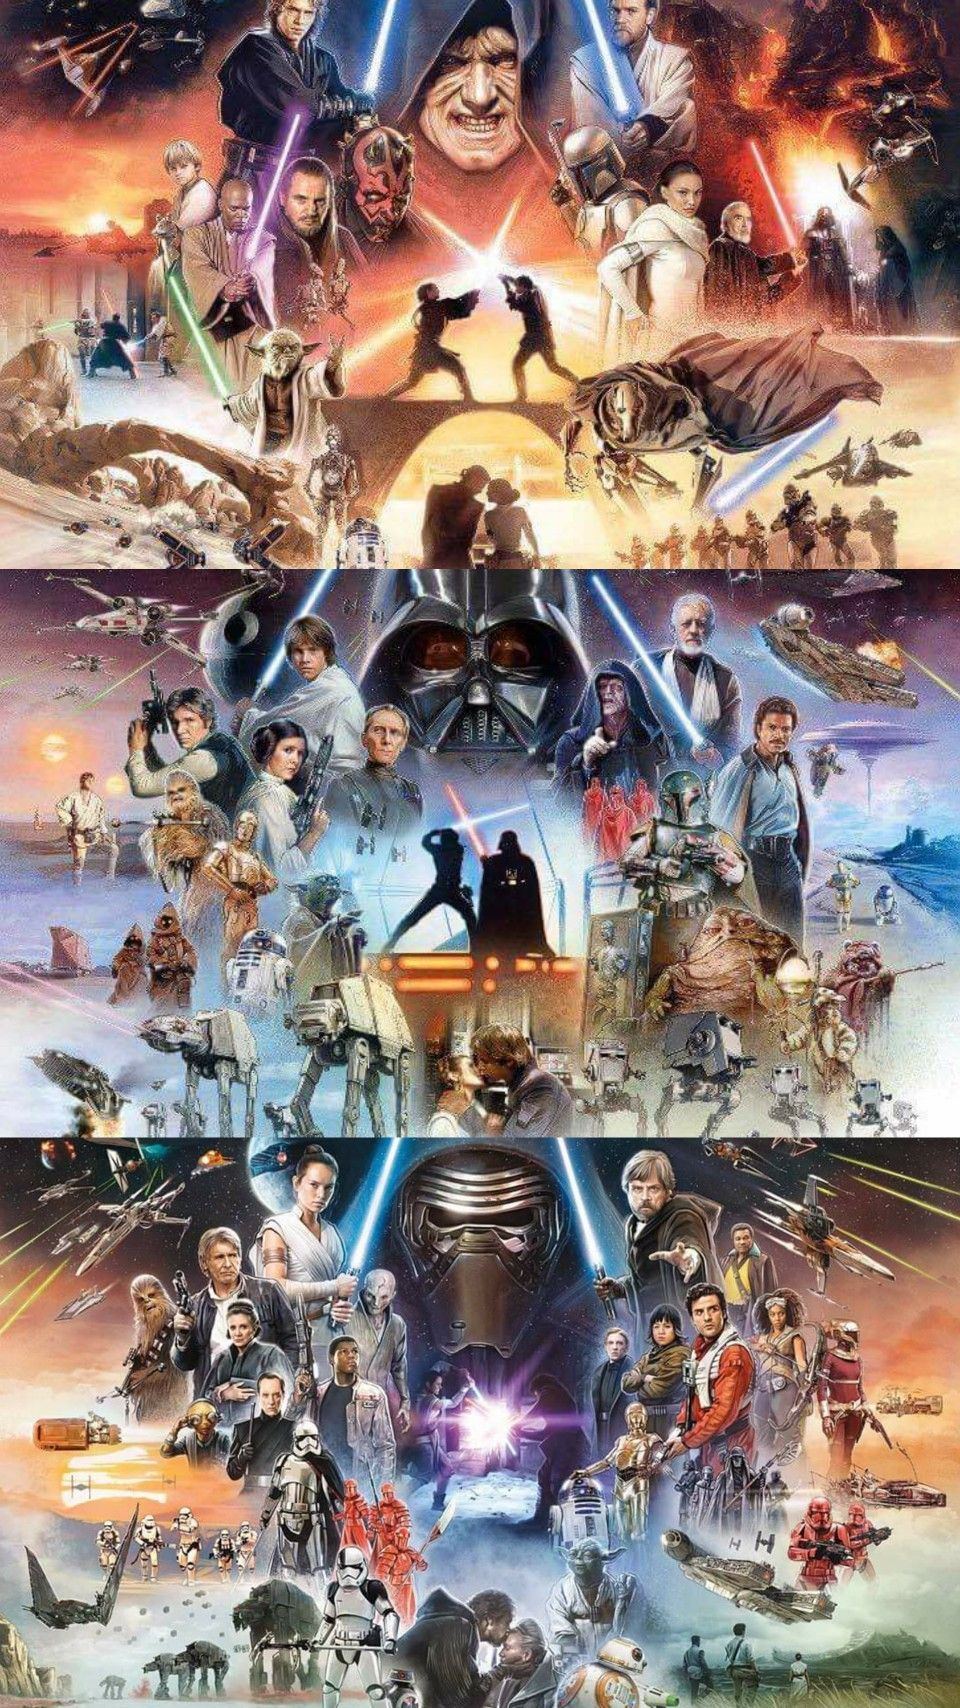 The Original Trilogy The Prequel Trilogy The Sequel Trilogy The Star Wars S Star Wars Poster Ideas Of In 2020 Star Wars Art Star Wars Poster Star Wars Wallpaper